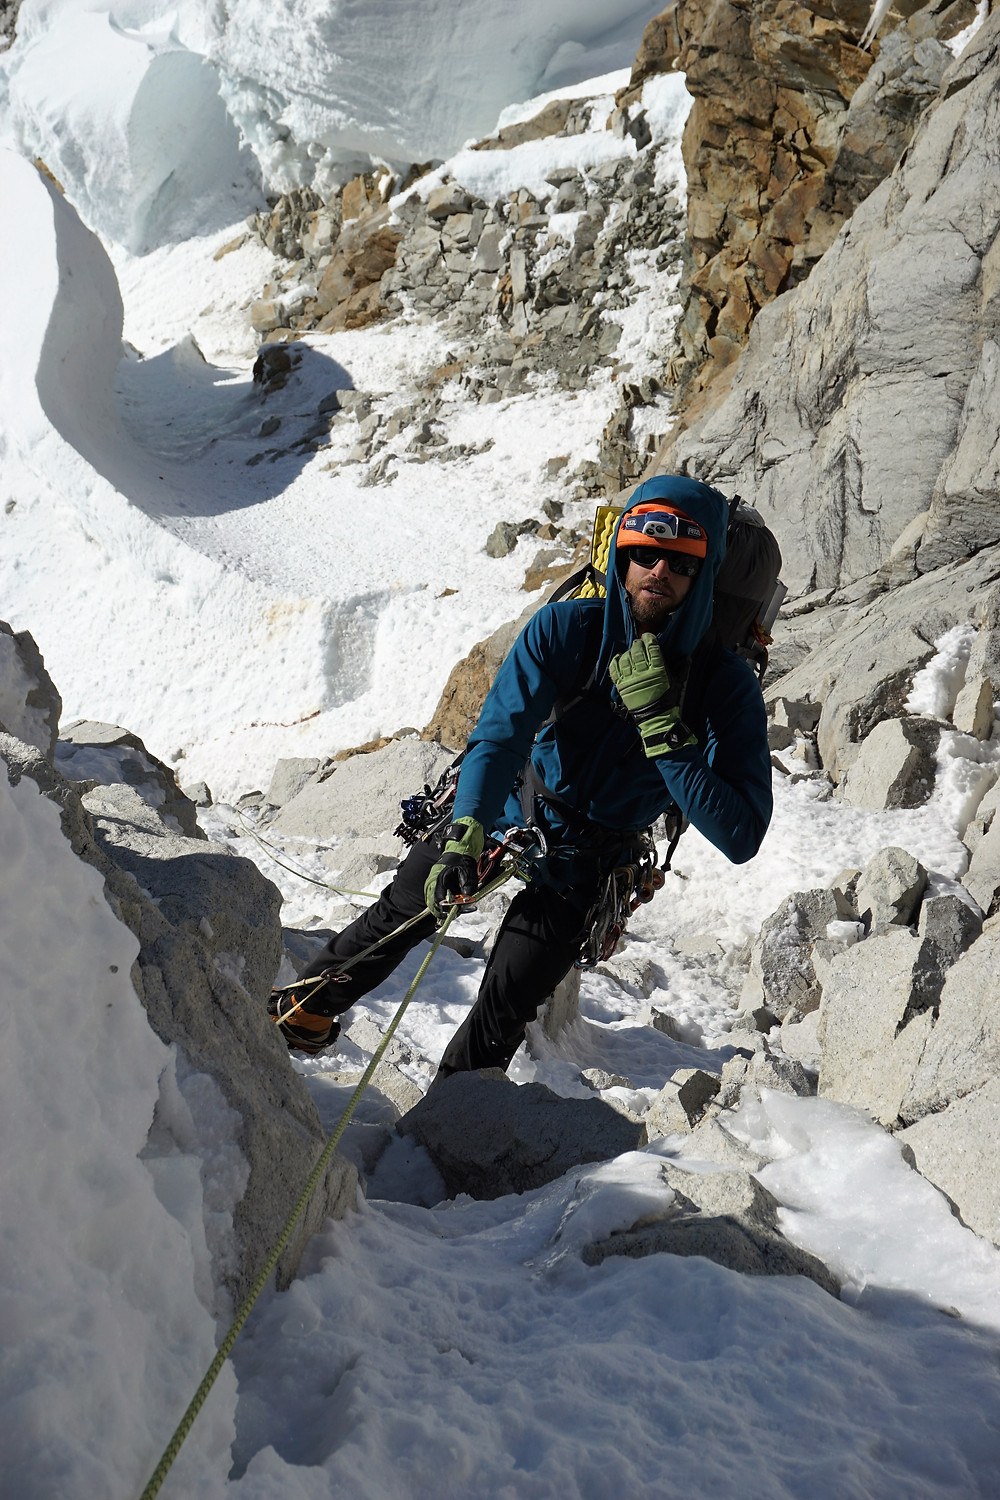 Alik at the top of the first pitch of the headwall